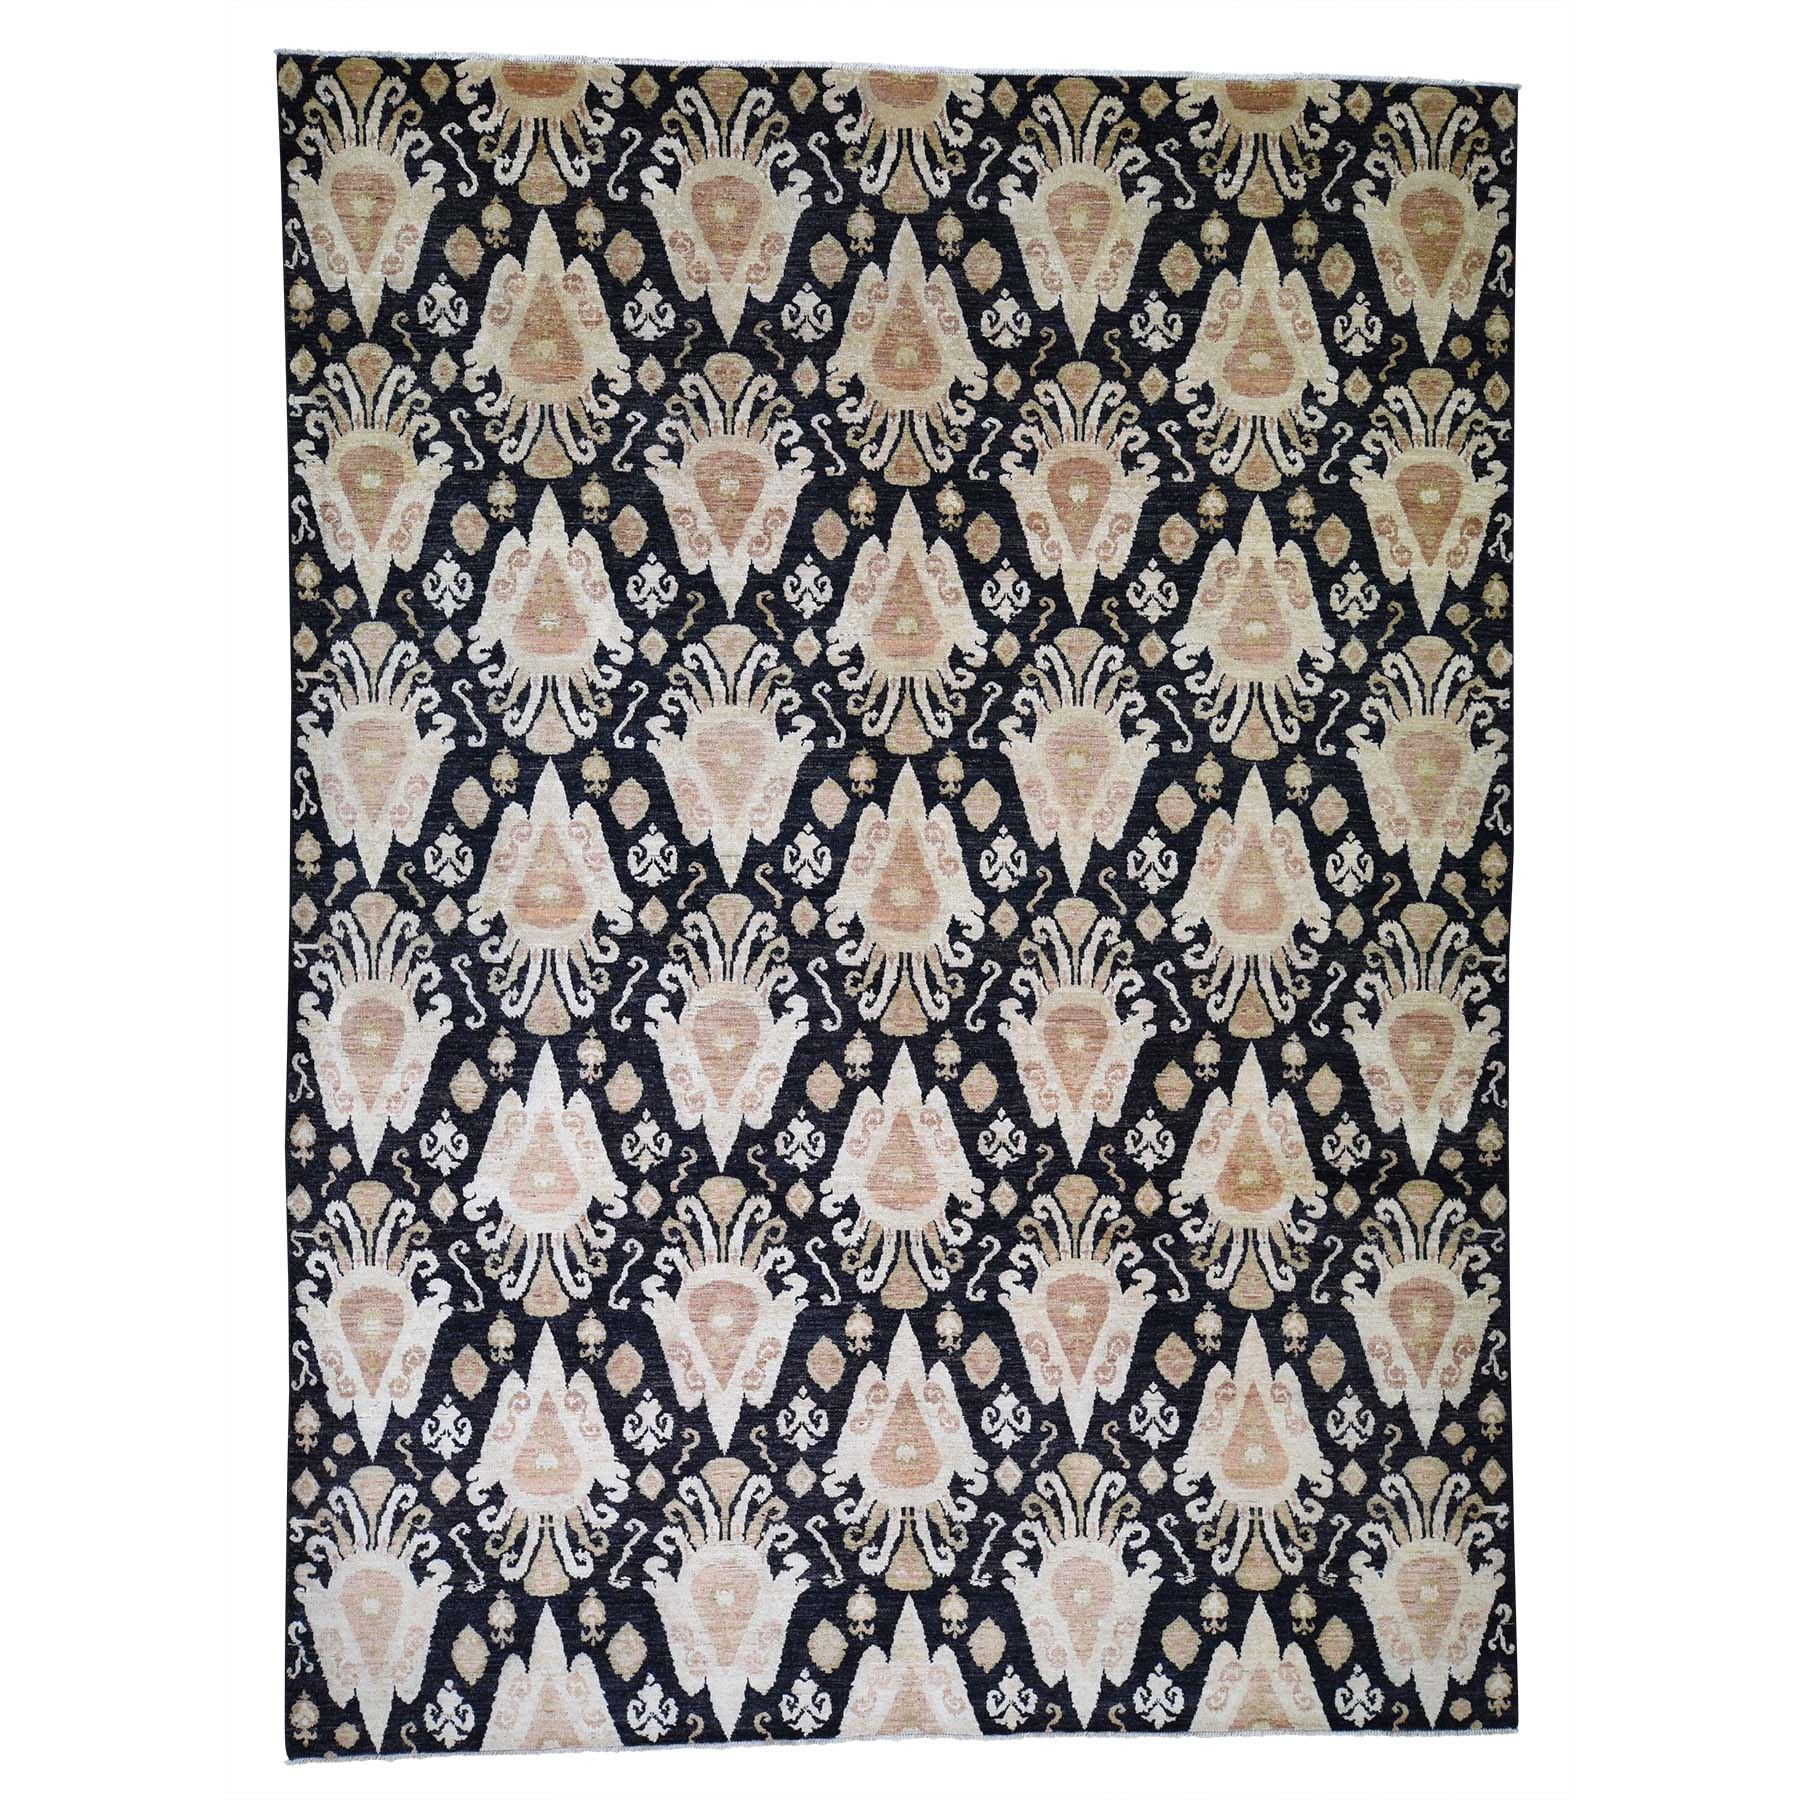 Eclectic and Bohemian Collection Hand Knotted Black Rug No: 0189486